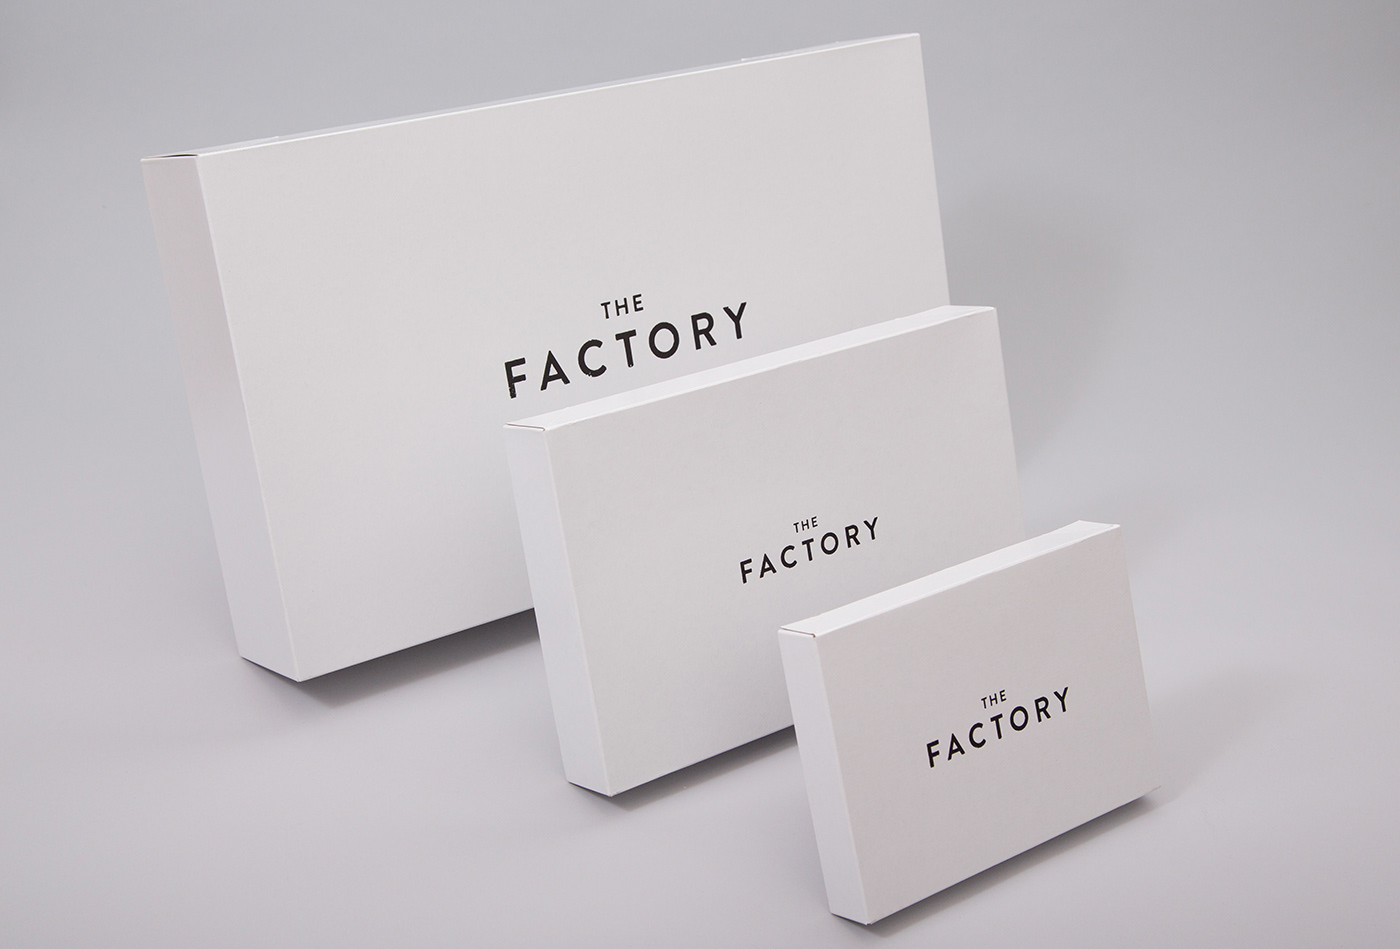 Clothing Gift Boxes for The Factory